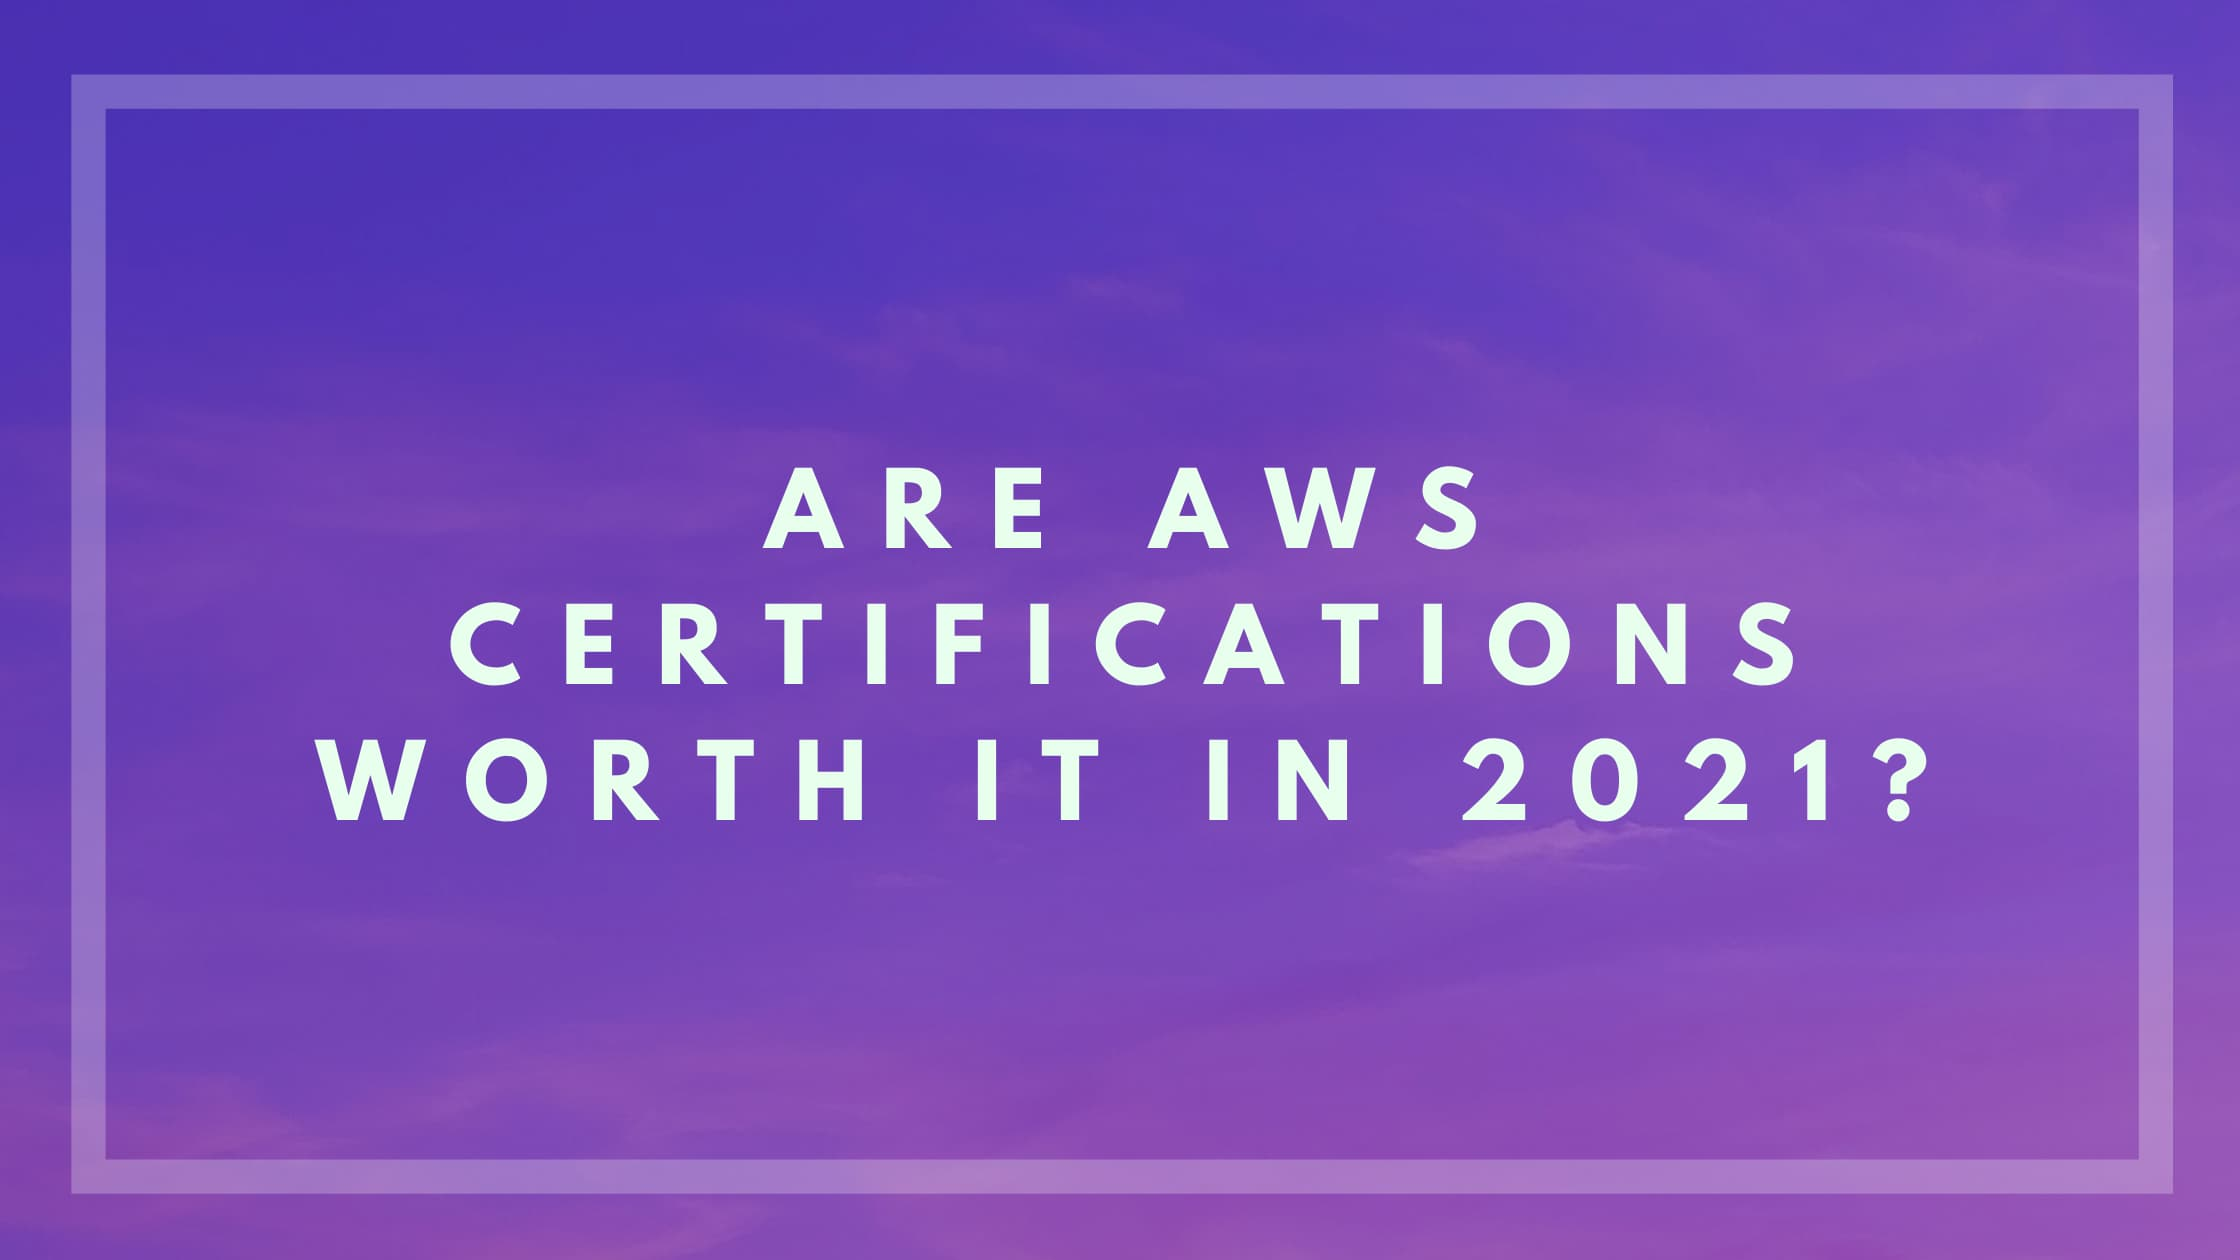 Are AWS Certifications Worth it in 2021?